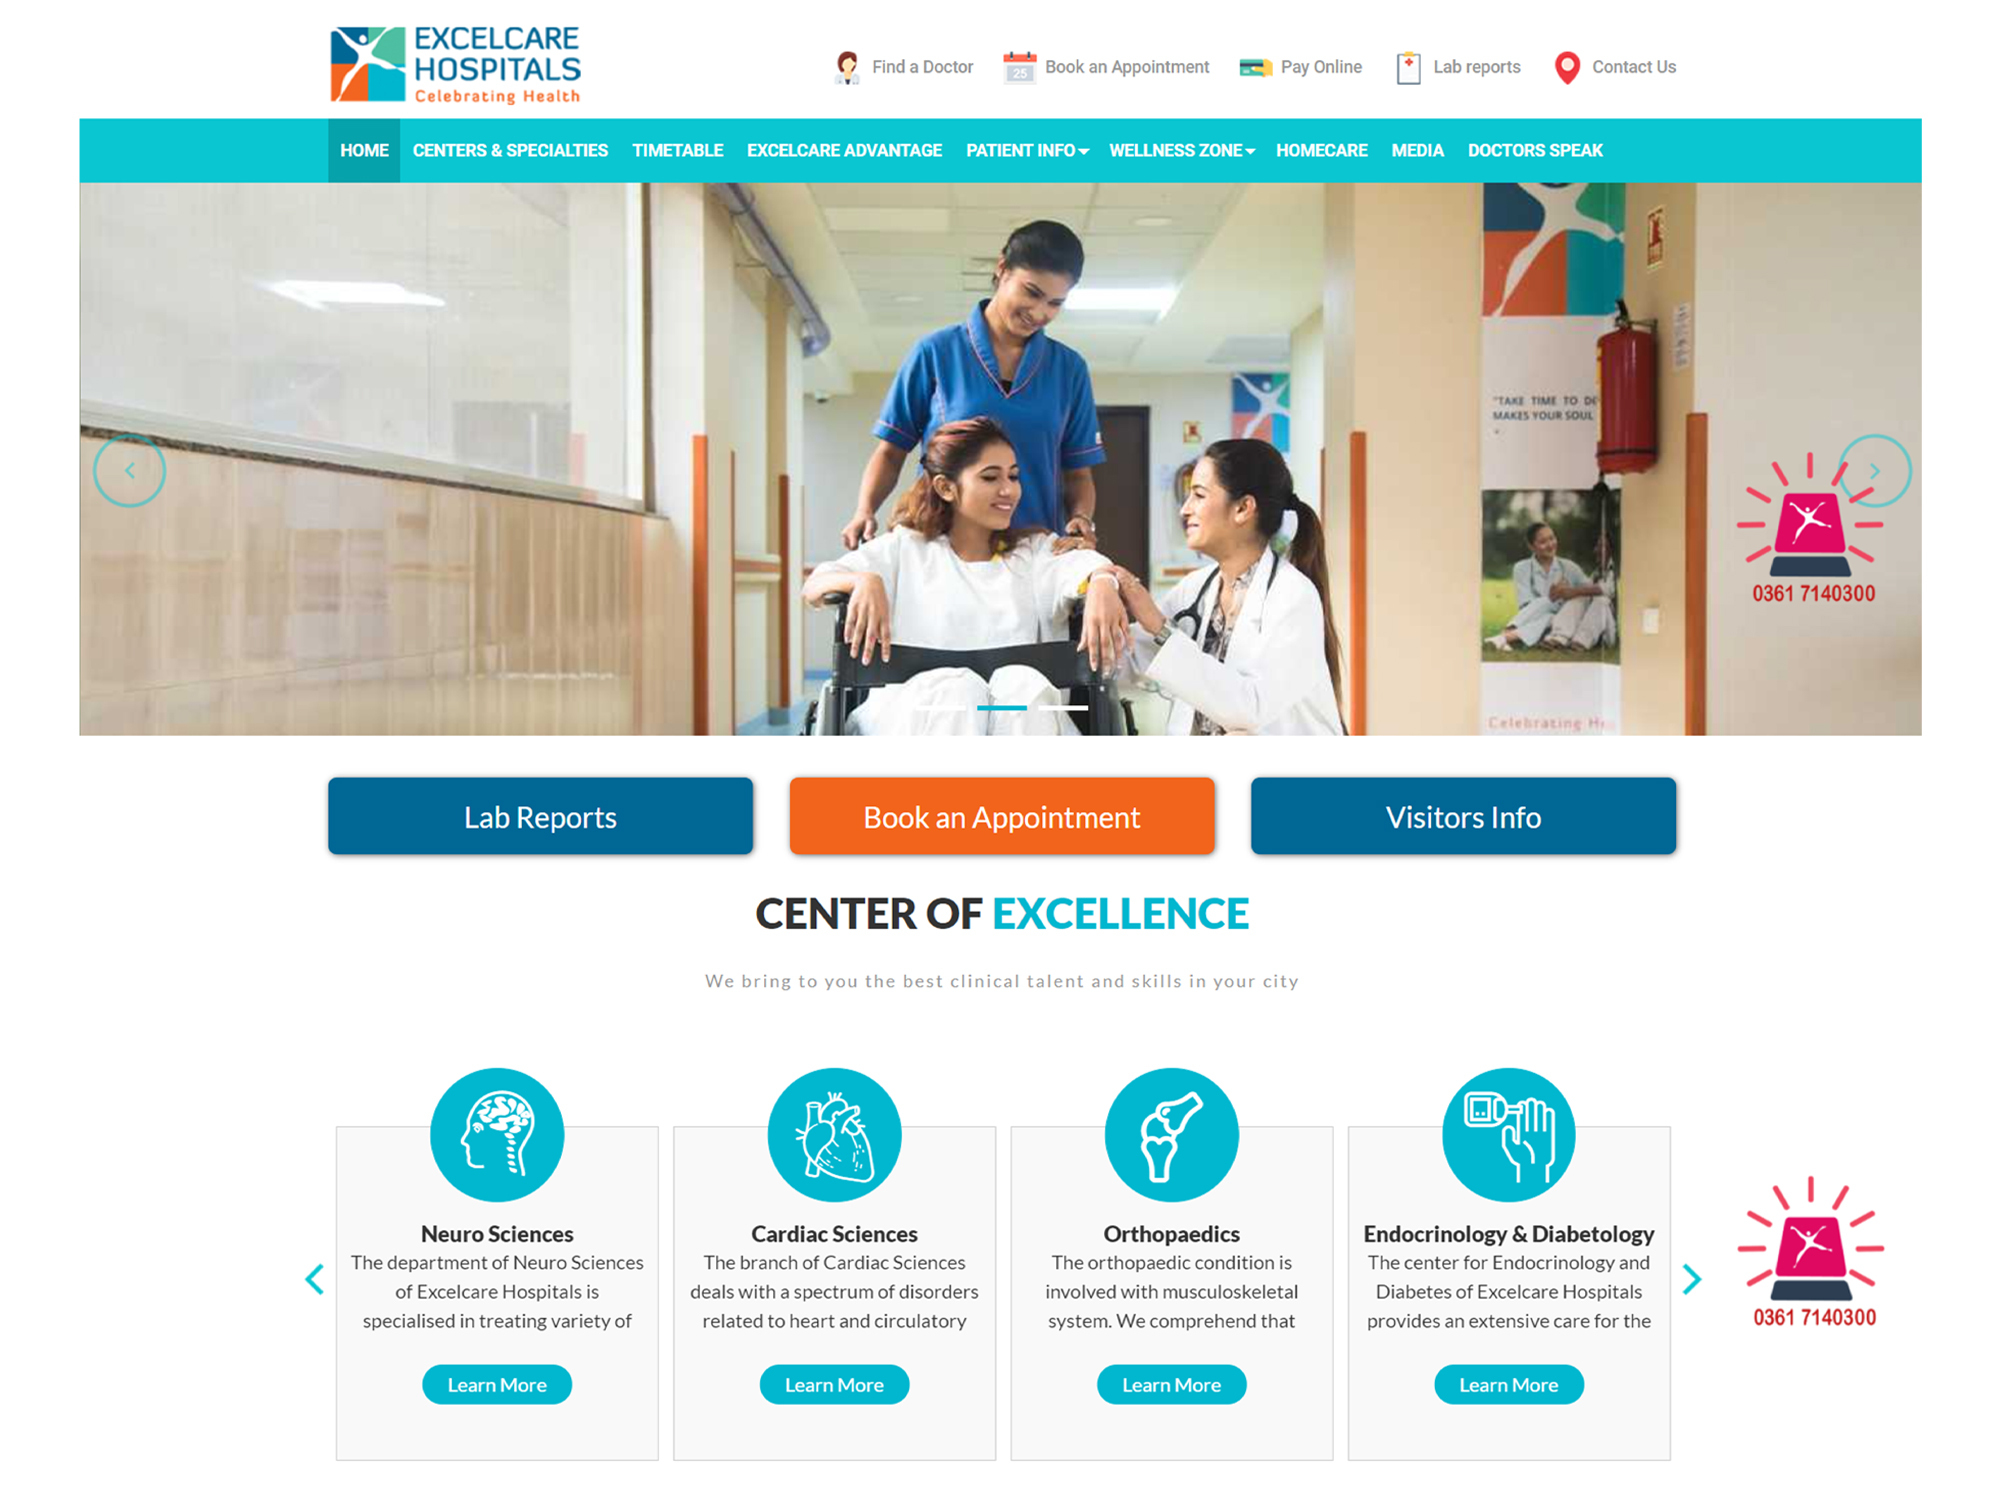 Excelcare Hospitals